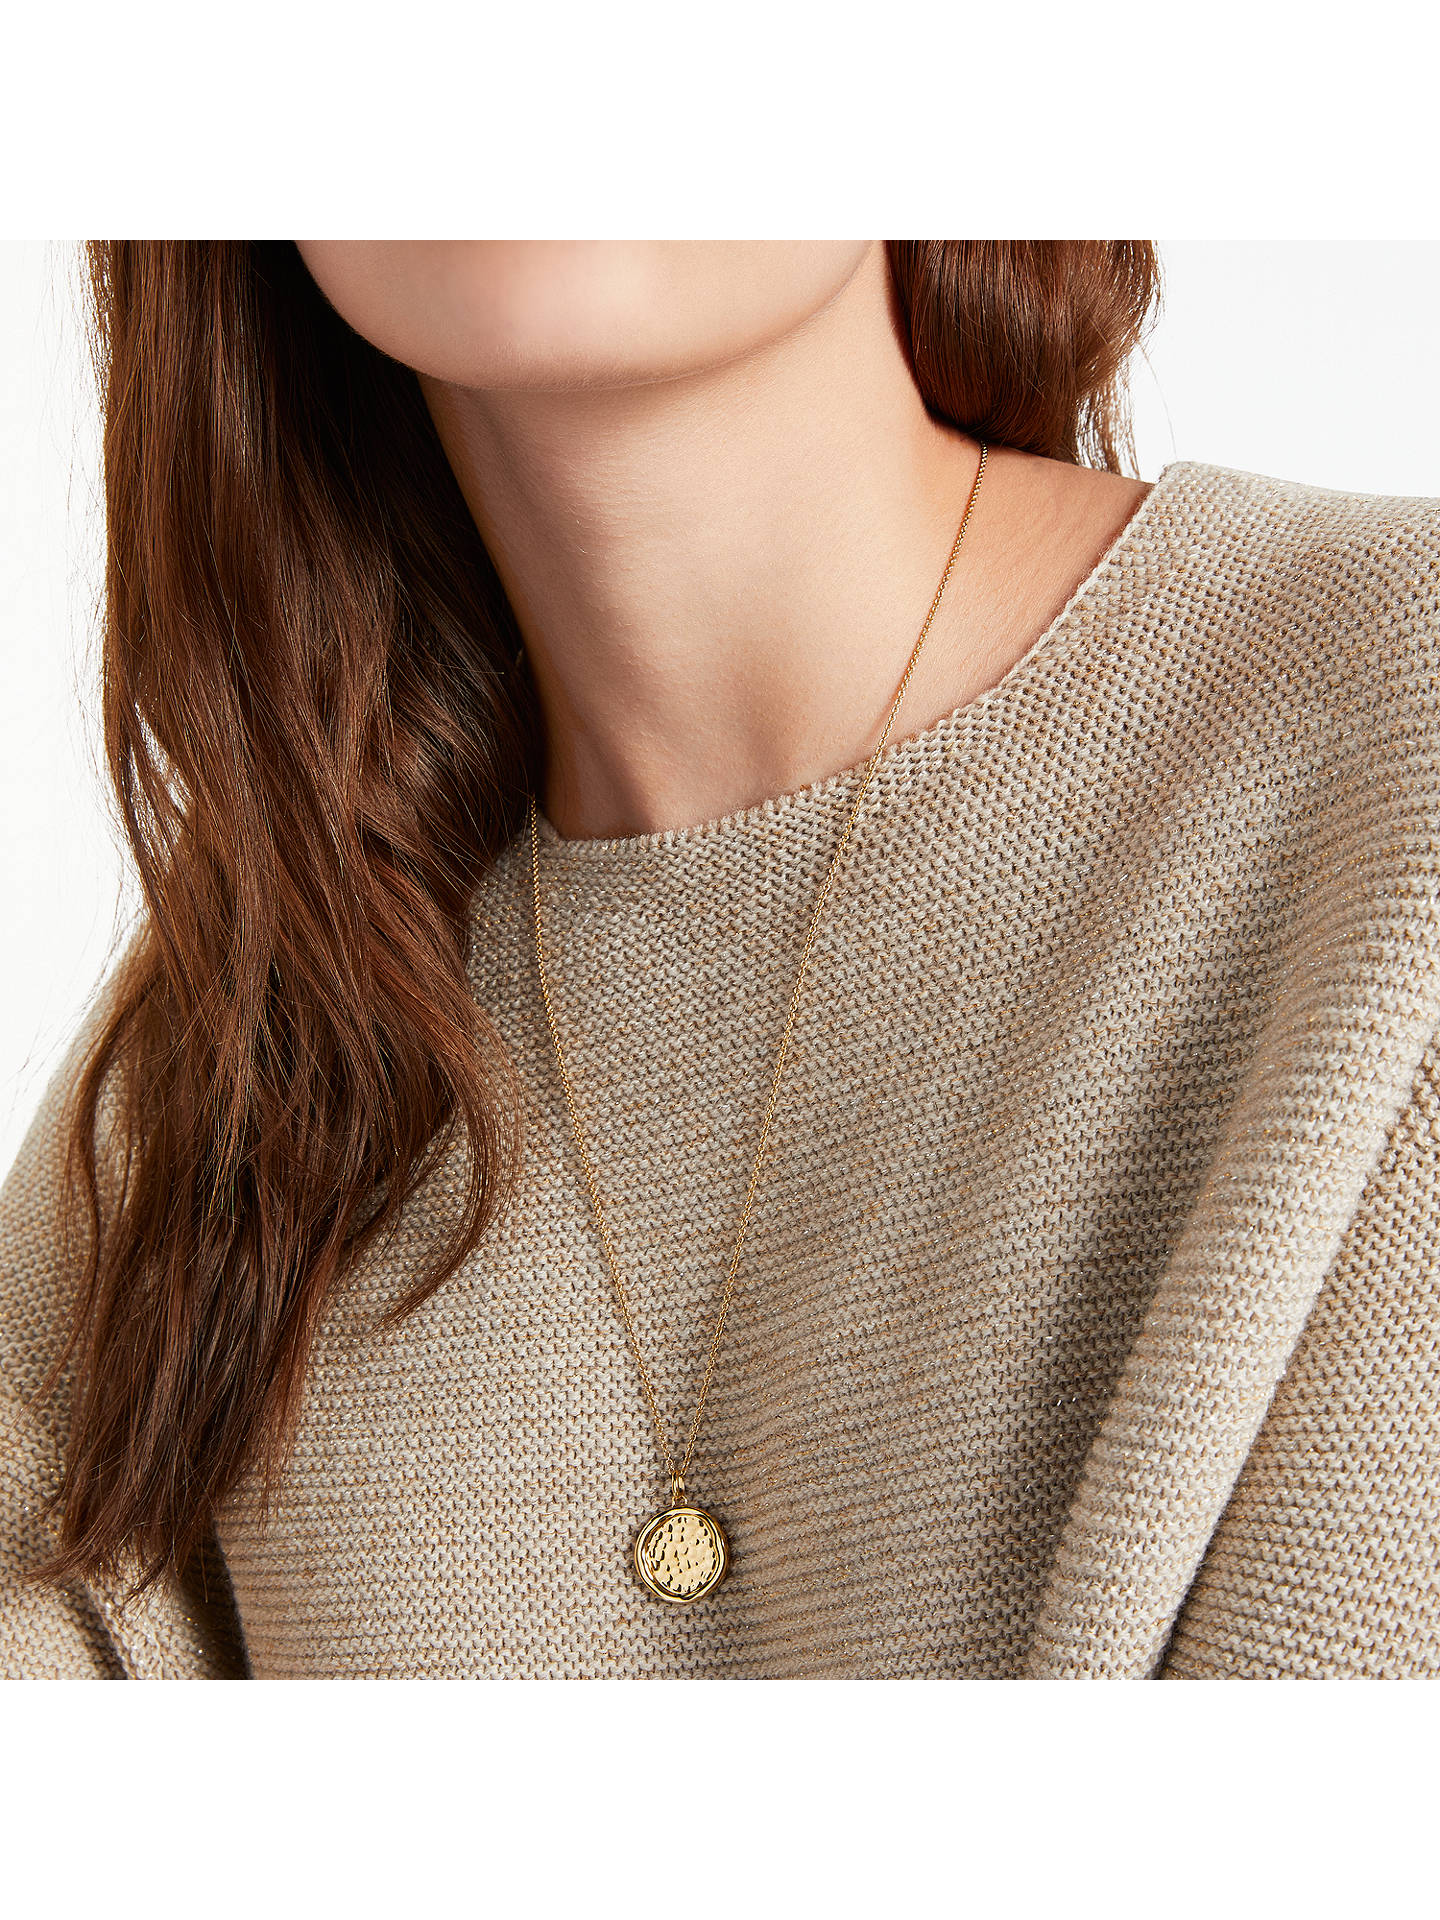 BuyModern Rarity Hammered Disc Pendant Necklace, Gold Online at johnlewis.com